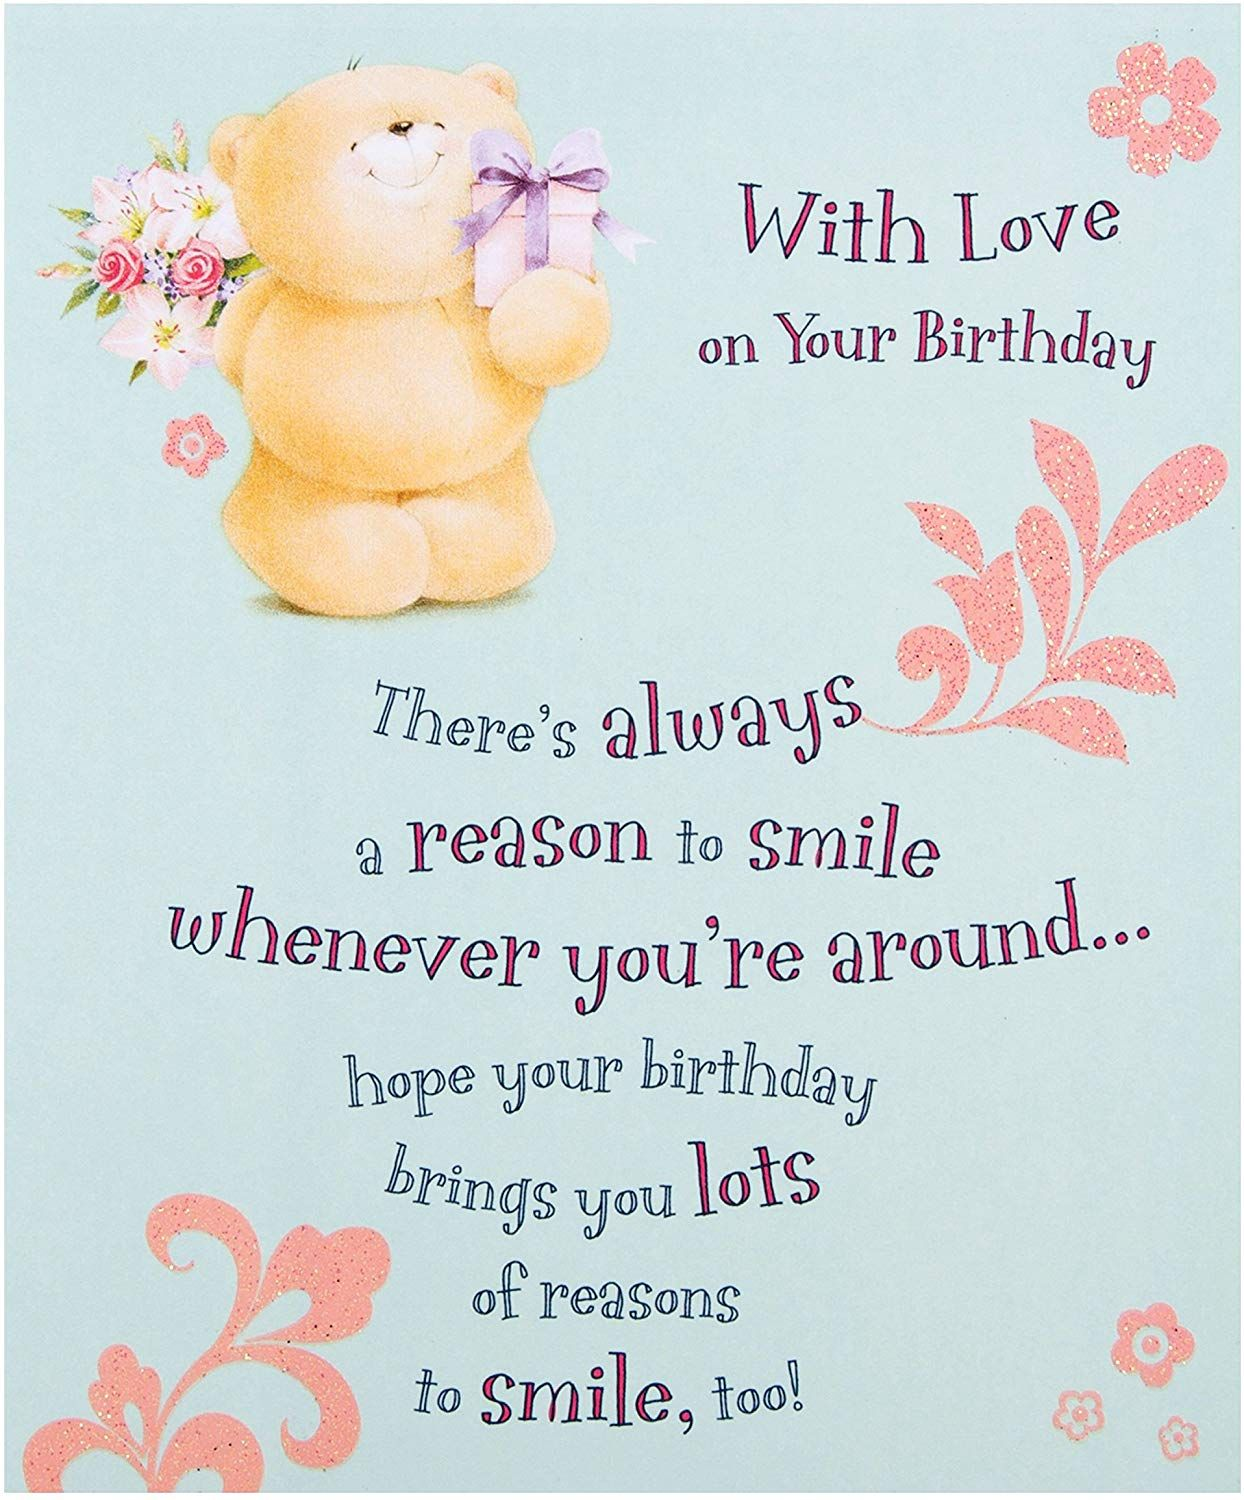 Hallmark Forever Friends Birthday Card With Love Small Amazon Co Uk Welcome Birthday Cards For Friends Birthday Cards Friend Birthday